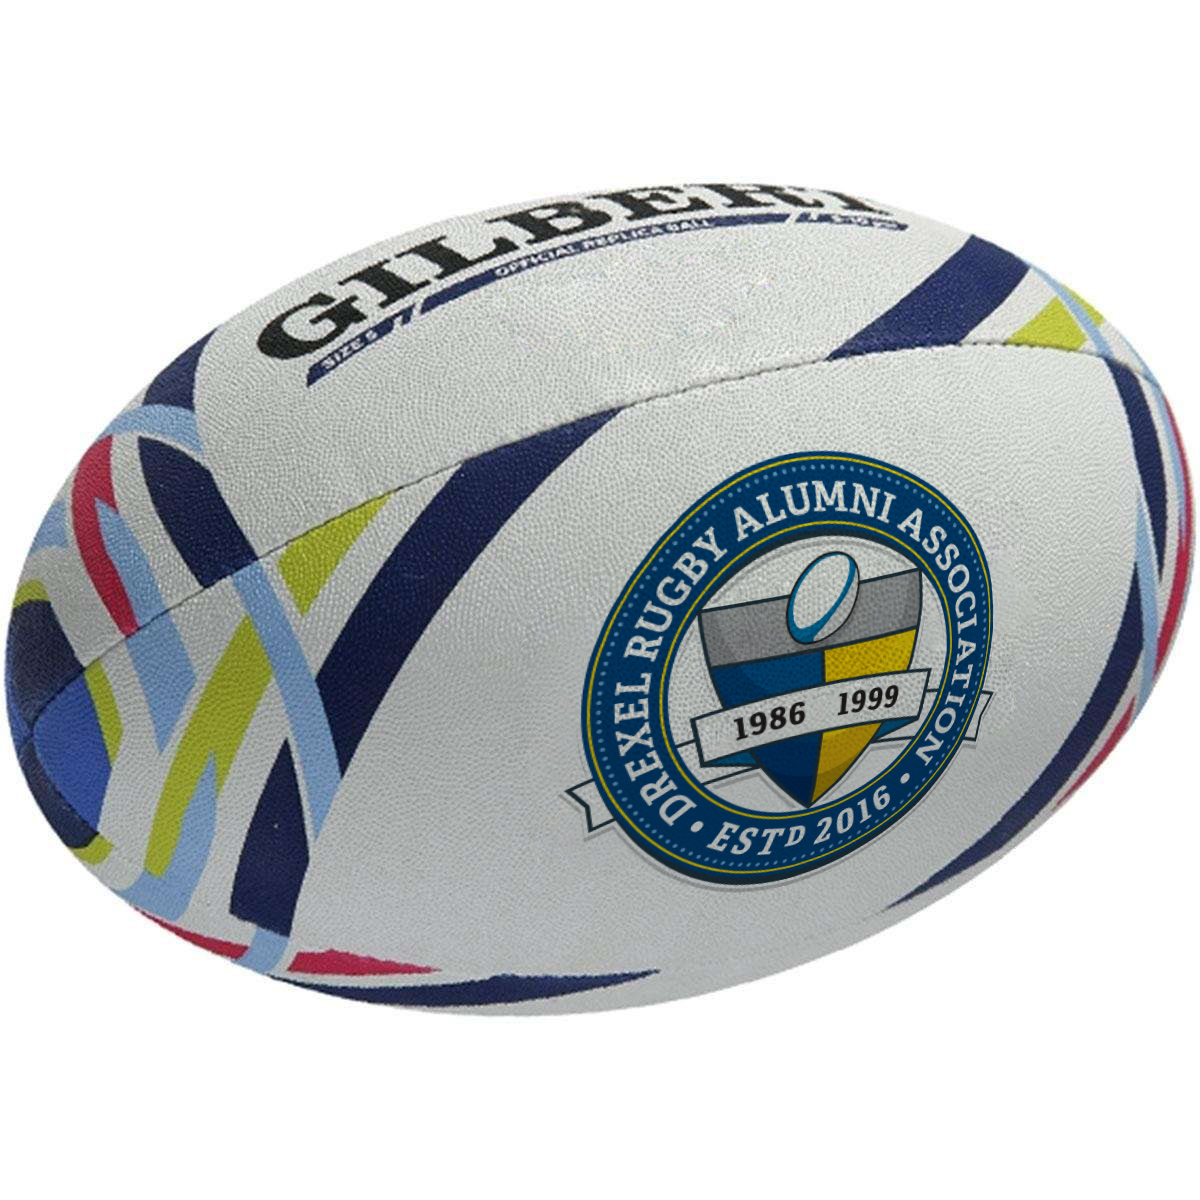 DRAA Full crest on rugby ball